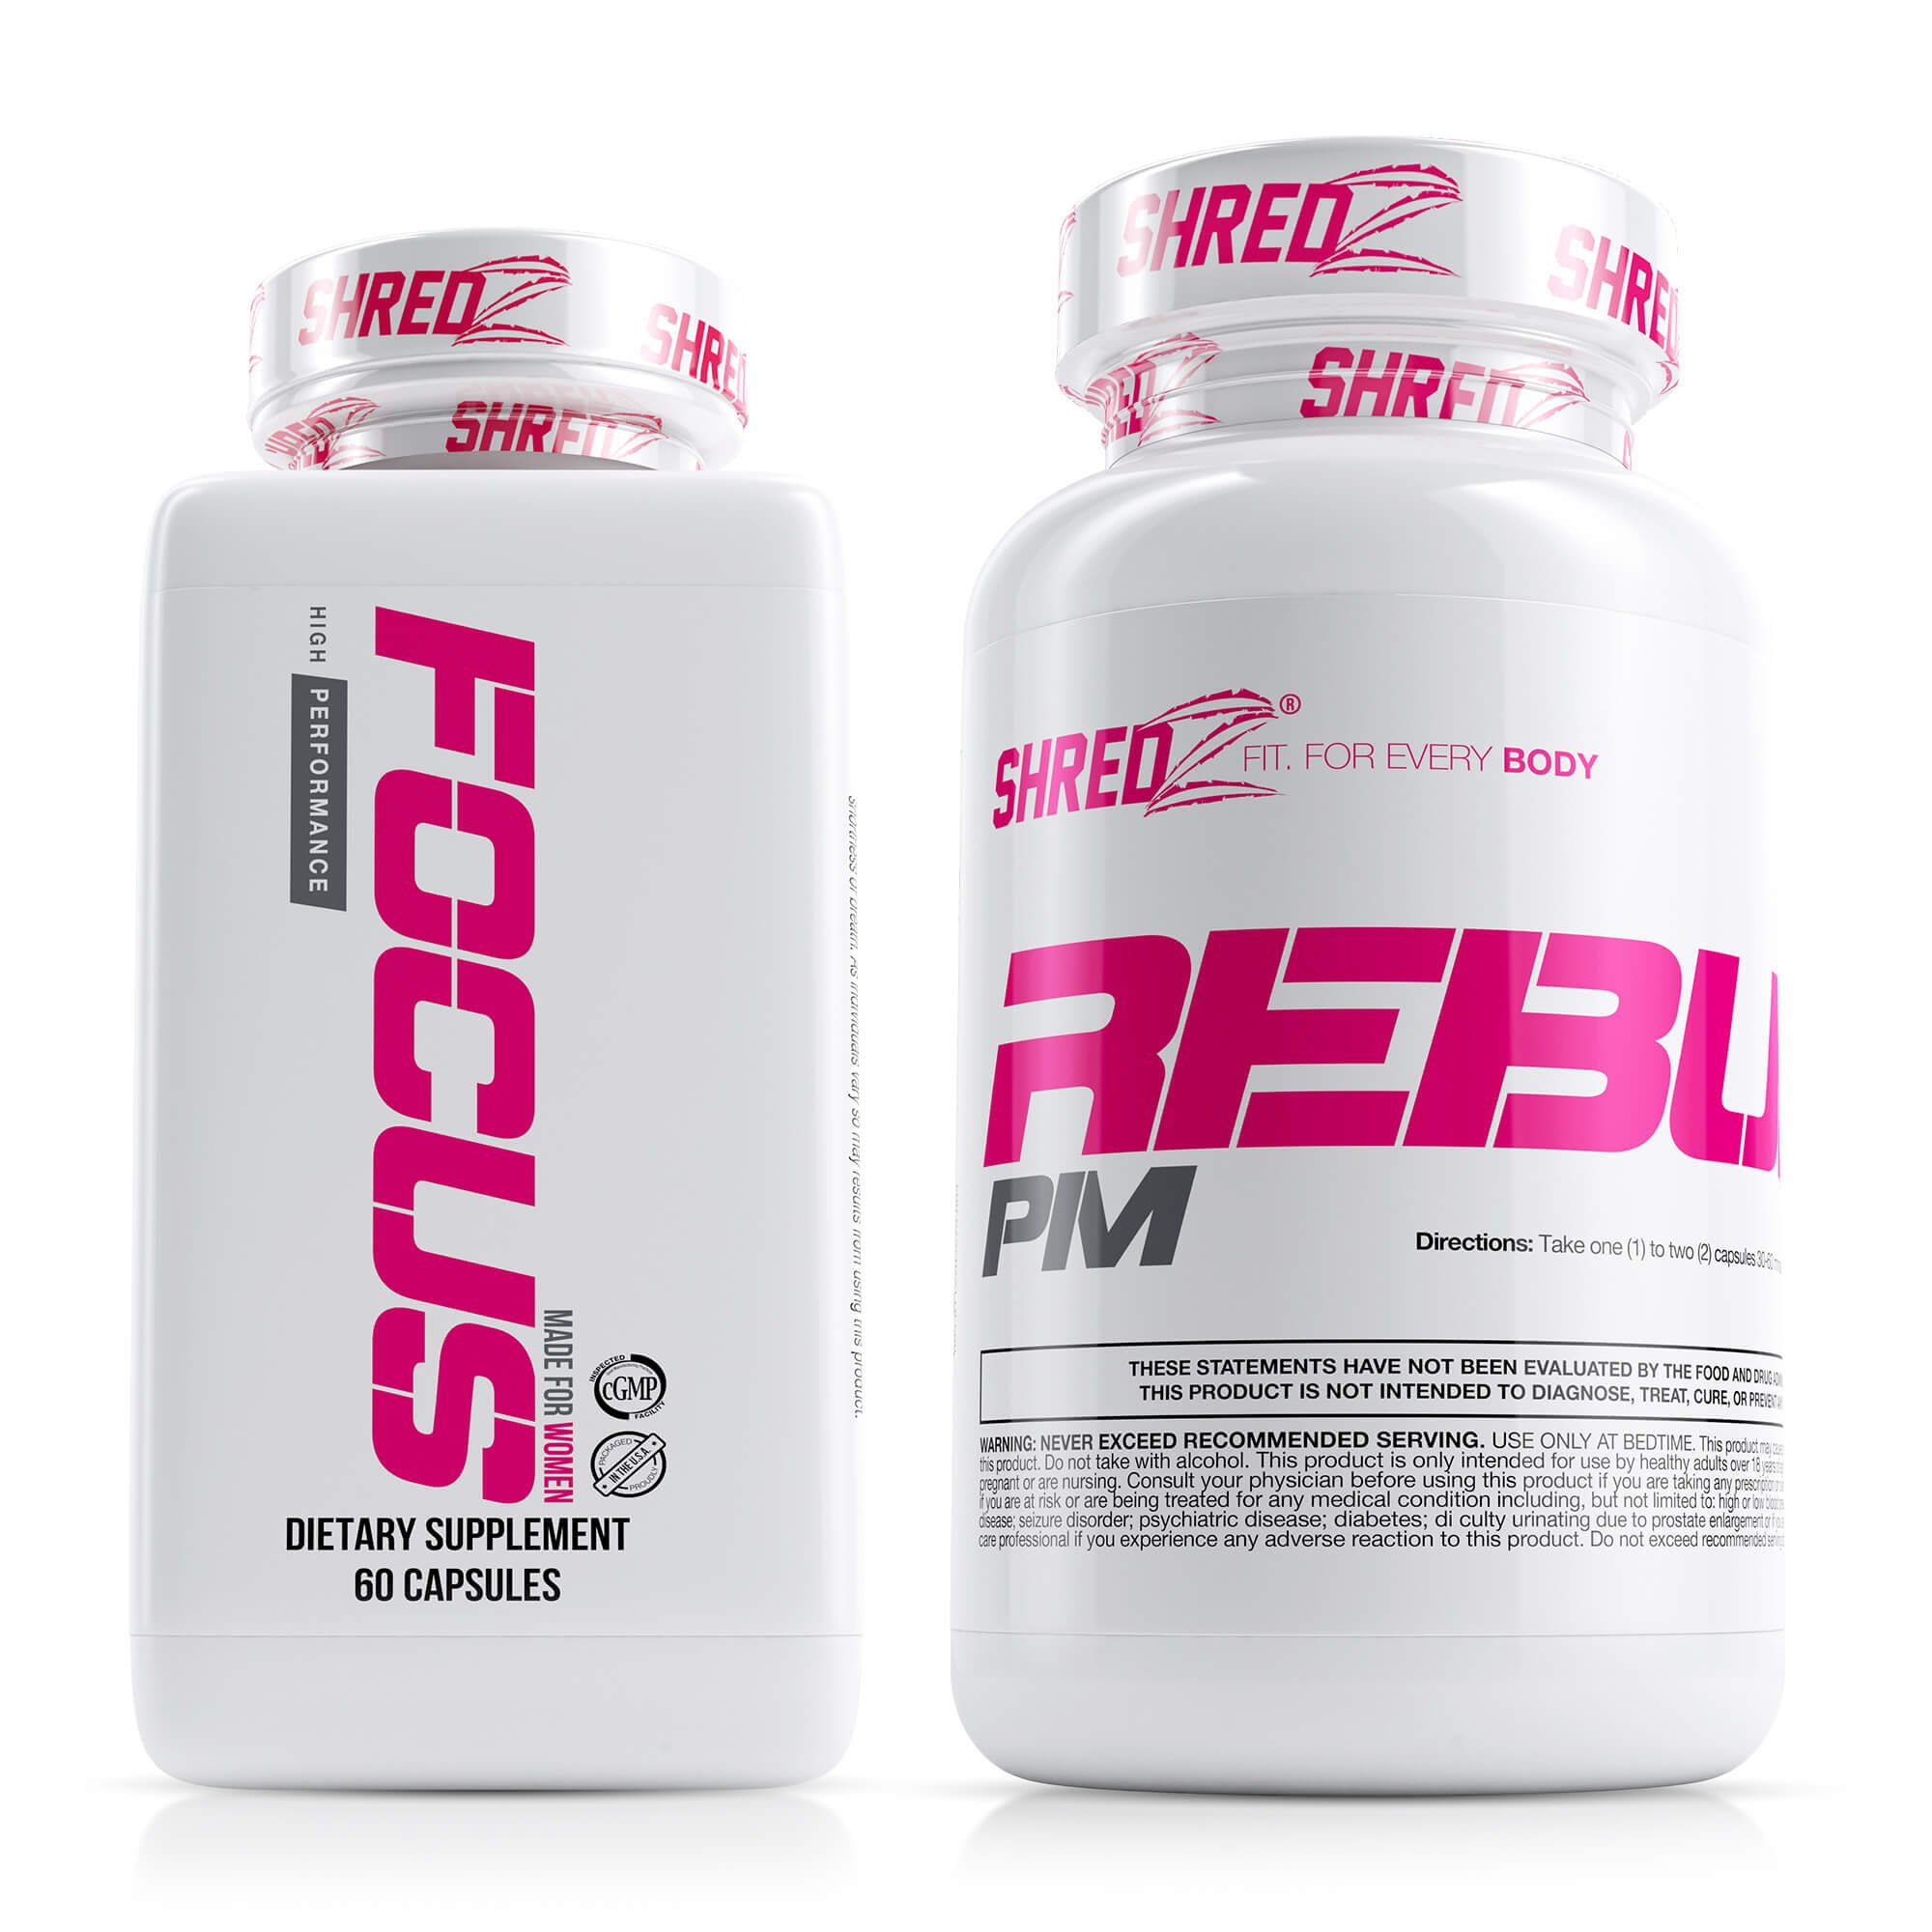 SHREDZ Limitless Supplement Stack for Women, Rebuild-PM + Focus, Boost Focus During the Day, Sleep Better at Night (30 Day Supply) by SHREDZ (Image #1)